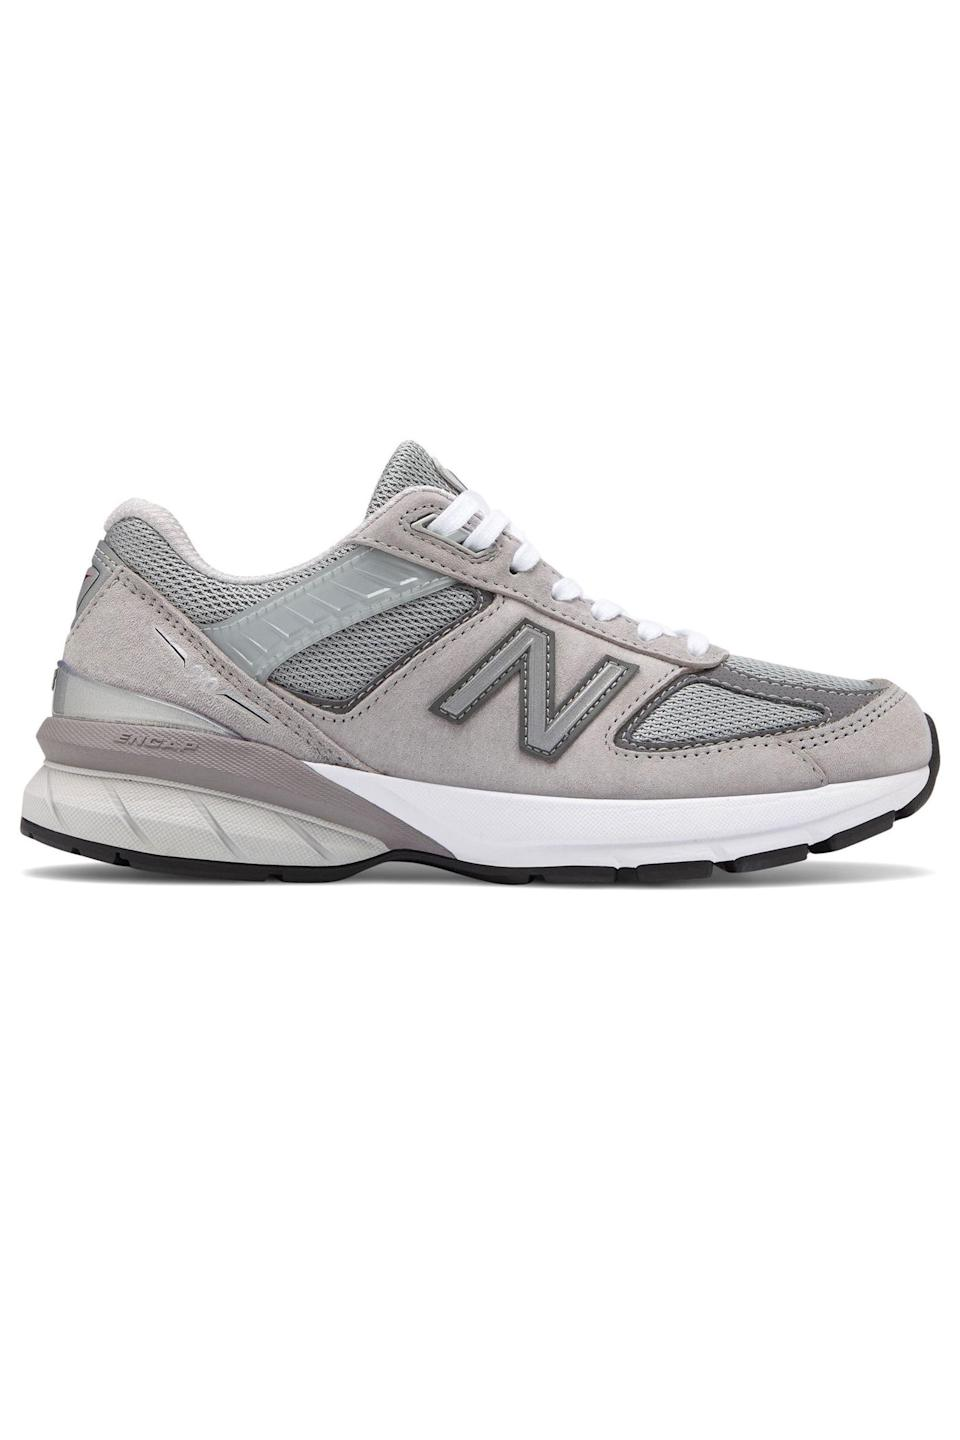 """<p><strong>New Balance</strong></p><p>amazon.com</p><p><strong>$174.95</strong></p><p><a href=""""https://www.amazon.com/dp/B0791VNMLJ?tag=syn-yahoo-20&ascsubtag=%5Bartid%7C10063.g.34824549%5Bsrc%7Cyahoo-us"""" rel=""""nofollow noopener"""" target=""""_blank"""" data-ylk=""""slk:Shop Now"""" class=""""link rapid-noclick-resp"""">Shop Now</a></p><p>Few dad sneakers are more iconic or podiatrist-loved than New Balance's 990 V5 sneaker. (Yes, this is the sneaker you've been seeing <a href=""""https://www.elle.com/fashion/shopping/a32333620/isolation-new-balance-sneakers/"""" rel=""""nofollow noopener"""" target=""""_blank"""" data-ylk=""""slk:all over Instagram since quarantine"""" class=""""link rapid-noclick-resp"""">all over Instagram since quarantine</a>.) Zoe Kravitz, Kaia Gerber and Rosie Huntington-Whitely are just a few of the celebs who've been photographed by the 'paps wearing the chunky anti-It shoe this year. </p>"""